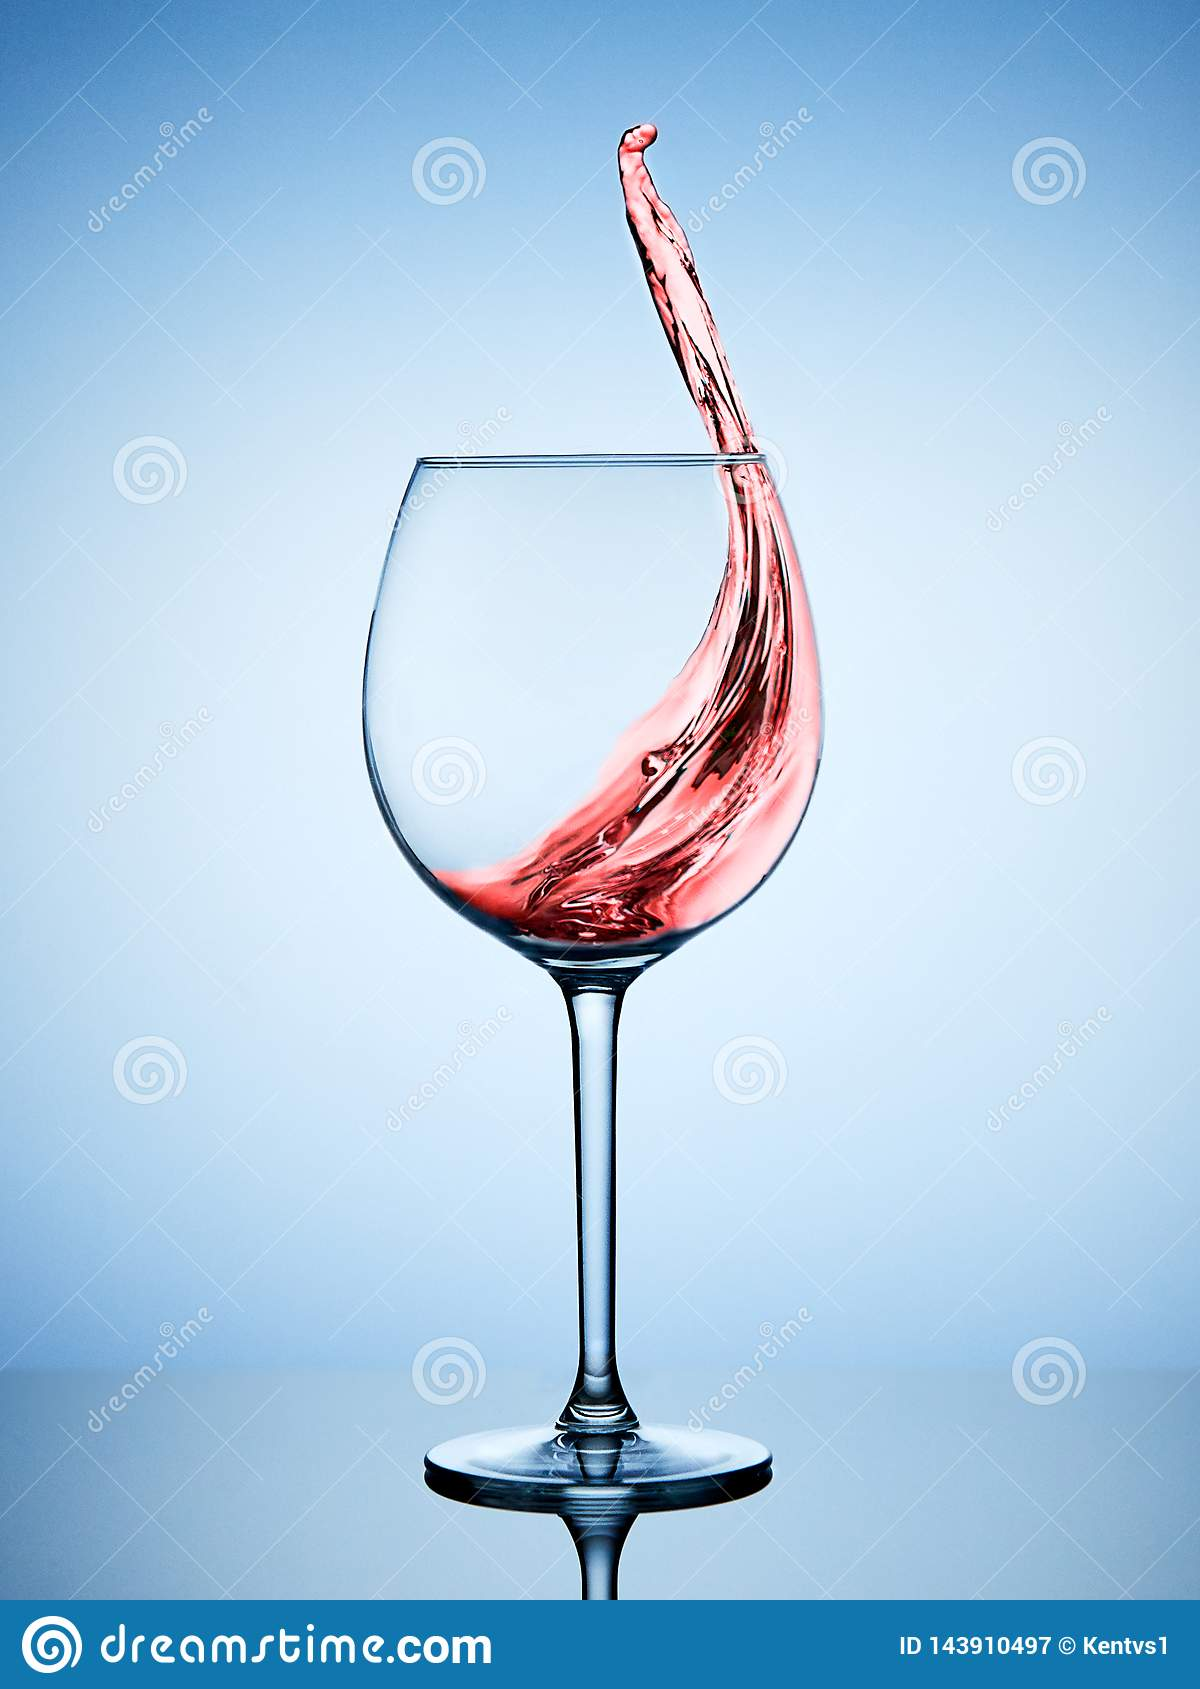 A splash of red wine in a glass